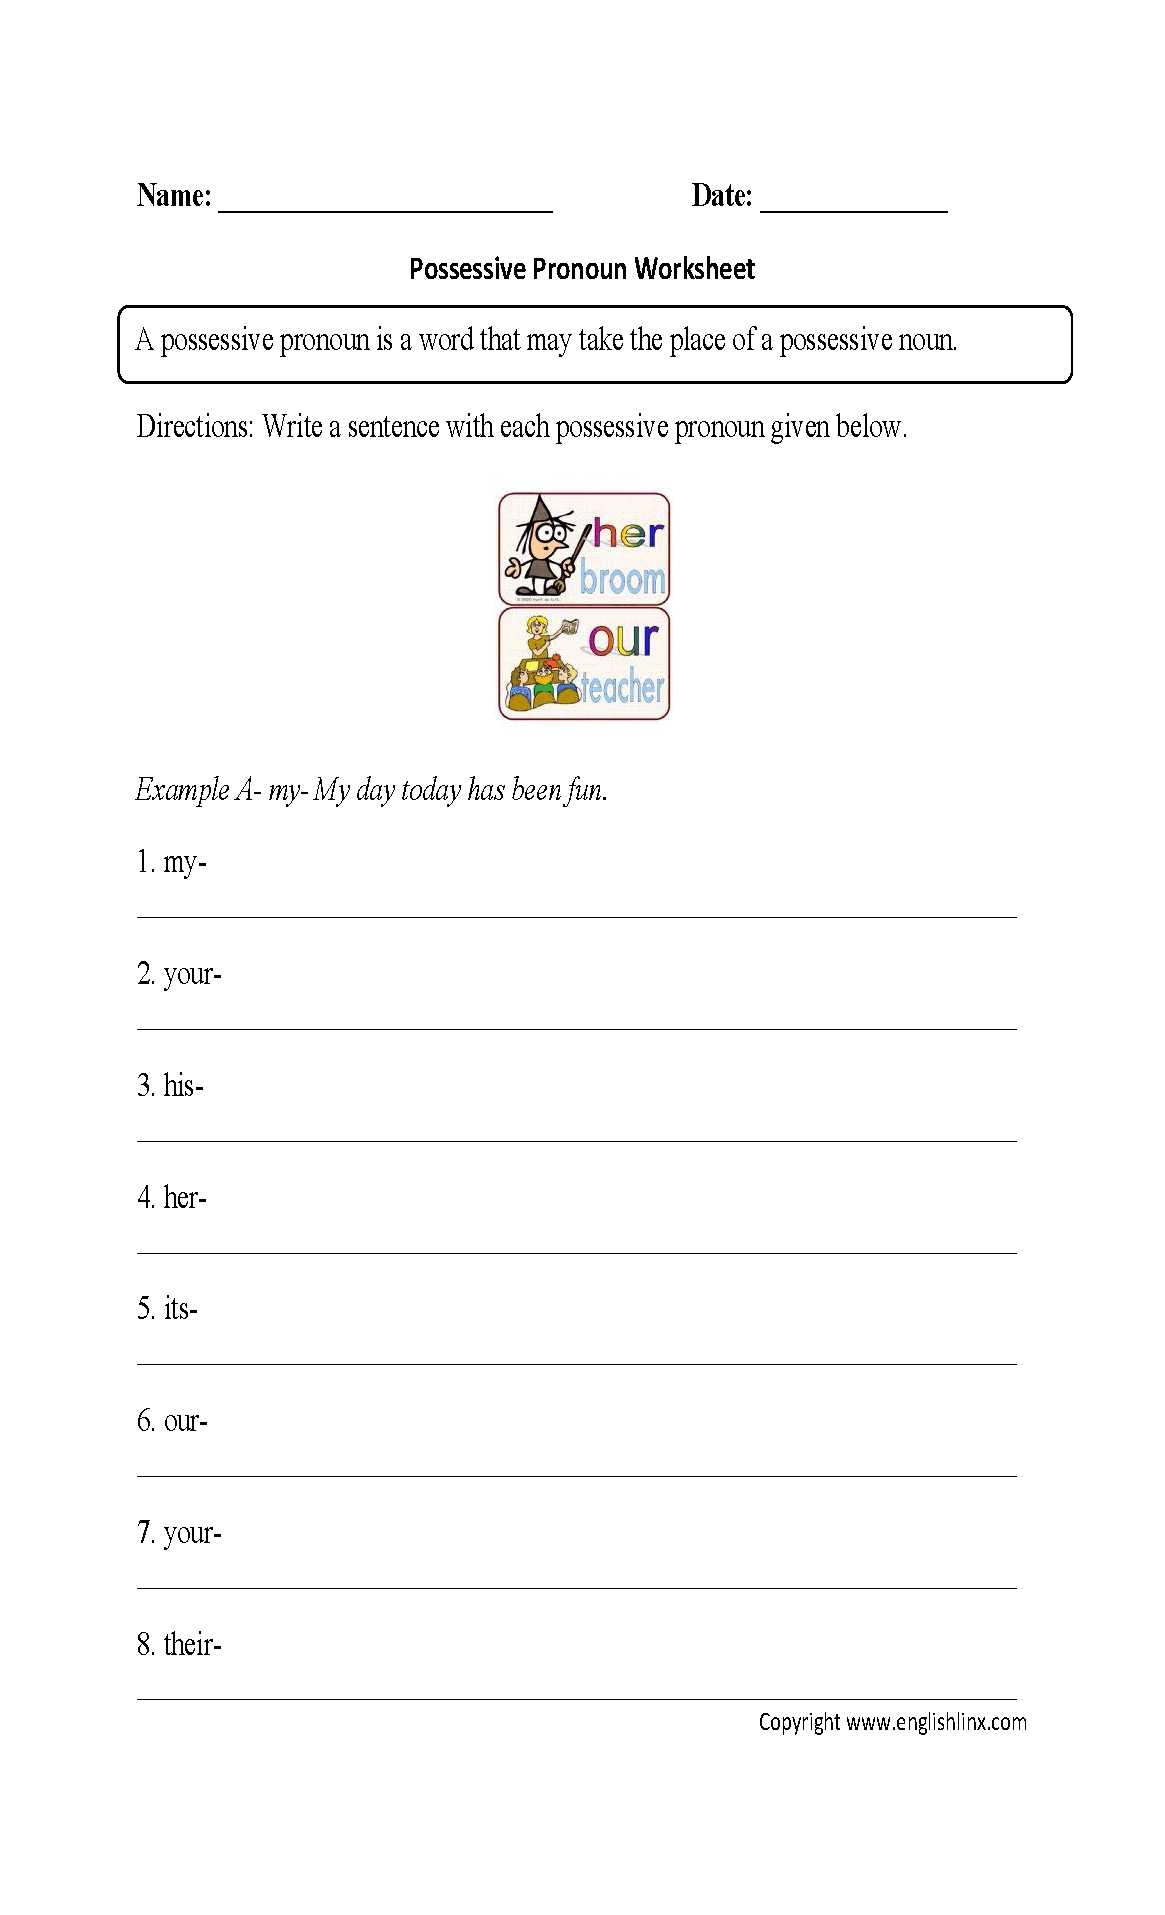 Possessive Adjectives Worksheet and New Possessive Pronoun Of someone